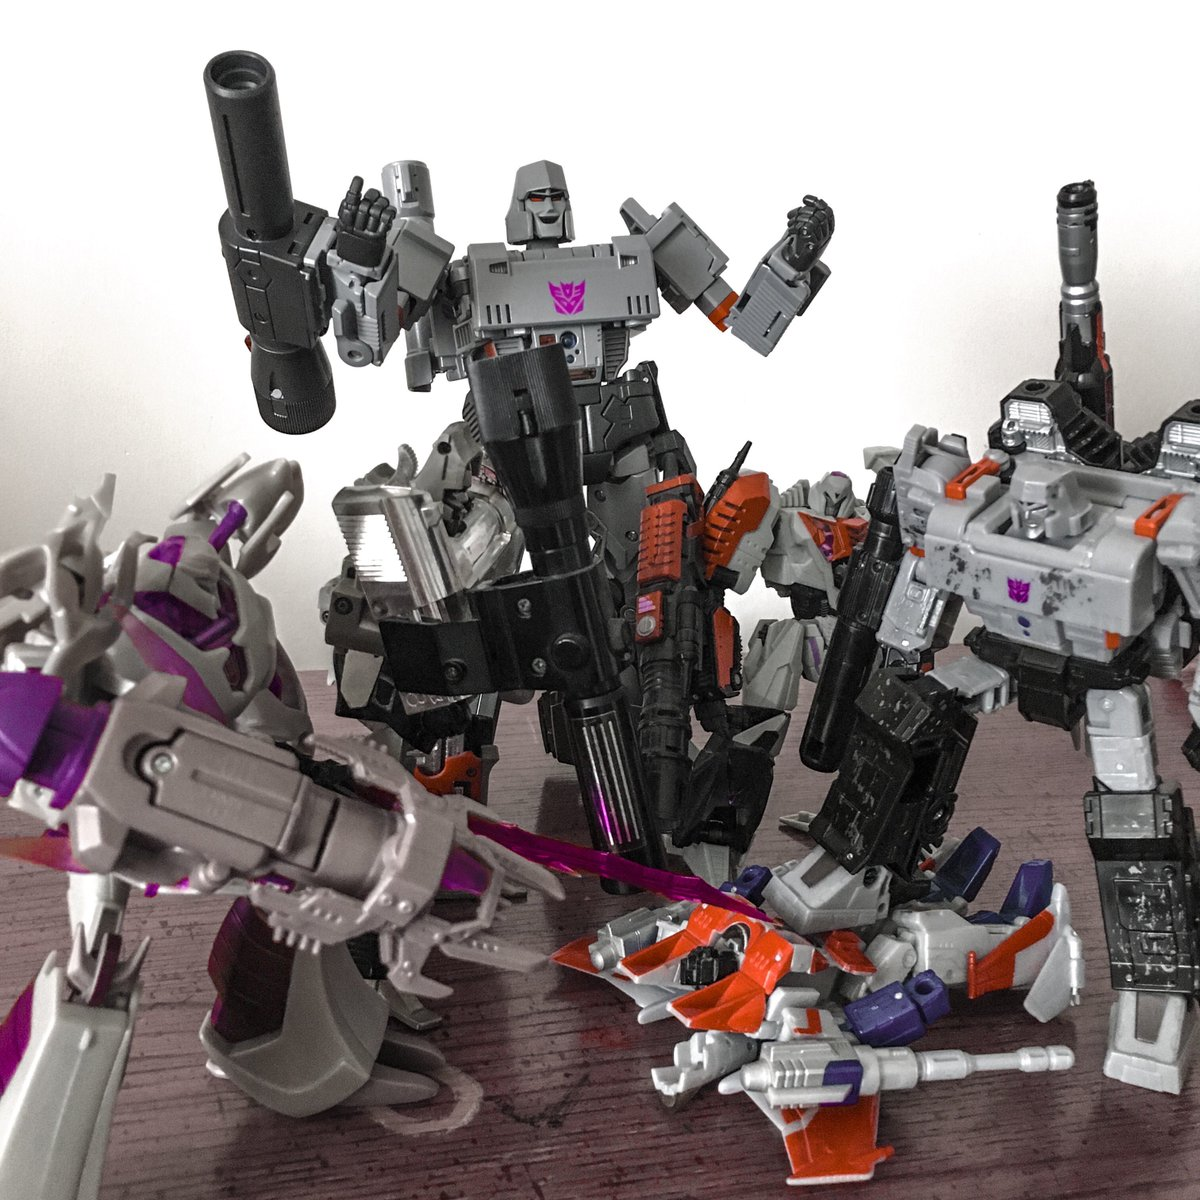 I have MEGATRONS for days! And #Starscream doesn't look too happy about it!.#MP36Megatron #MasterpieceMegatron #Megatron #Decepticons #WarForCybertron #SIEGE #G1 #iLoveThe80s #80sBaby #ManChild #NerdLife